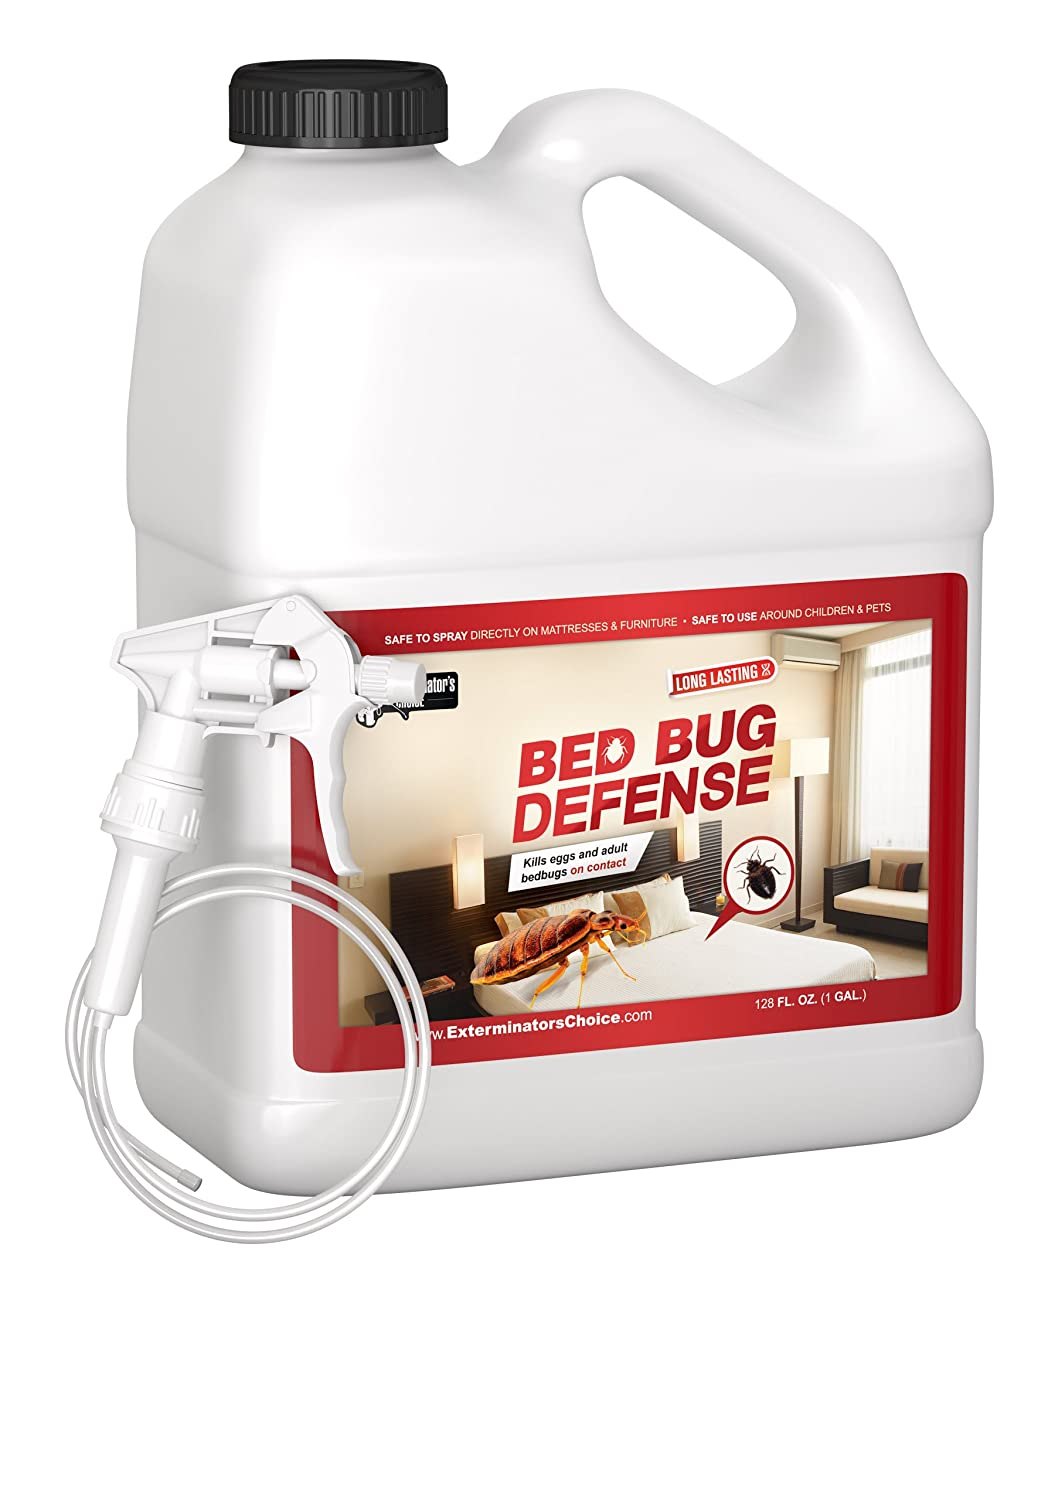 Exterminators Choice Bed Bug Defense-One Gallon-All Natural Kills & Repels BedBugs- One Gallon-128oz Insect Spray|Home Bed Bug Repellent & Killer|Spray for Bugs|Bug Repellent| …